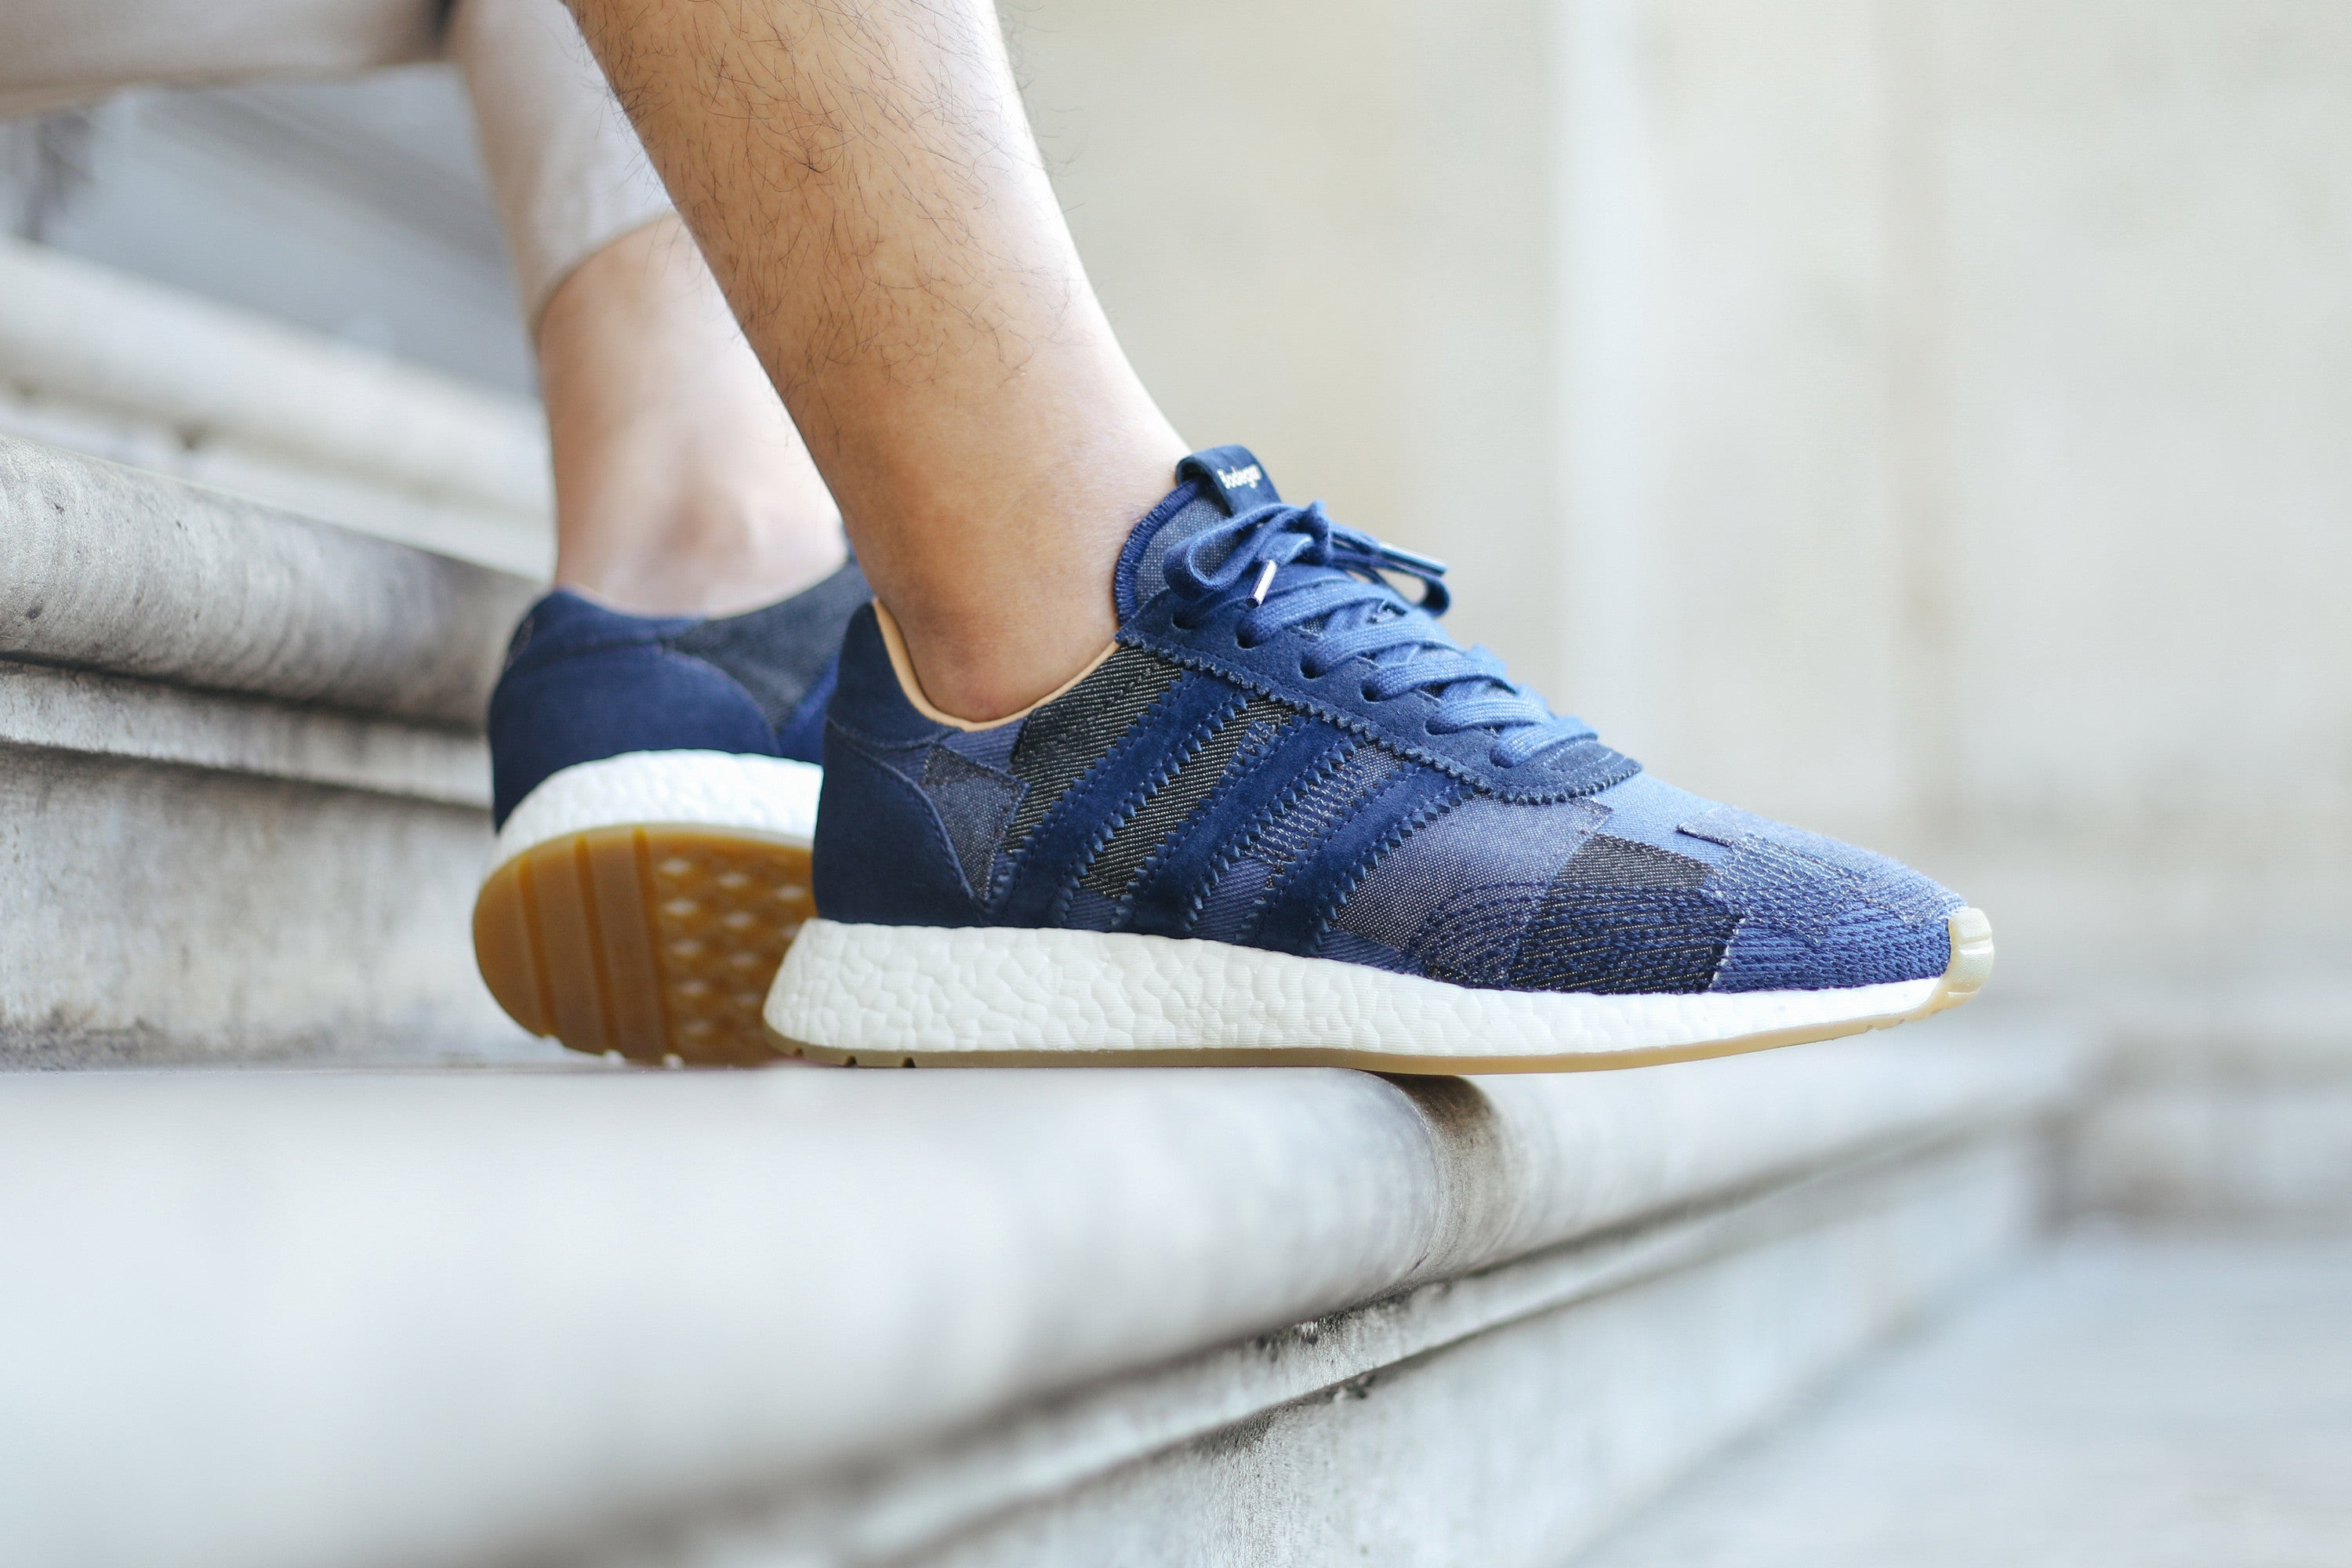 e82c20a5628f Bodega x END. x Adidas Iniki Runner SE Multicolor BY2104 Retail   180  in  sizes 5-14 US